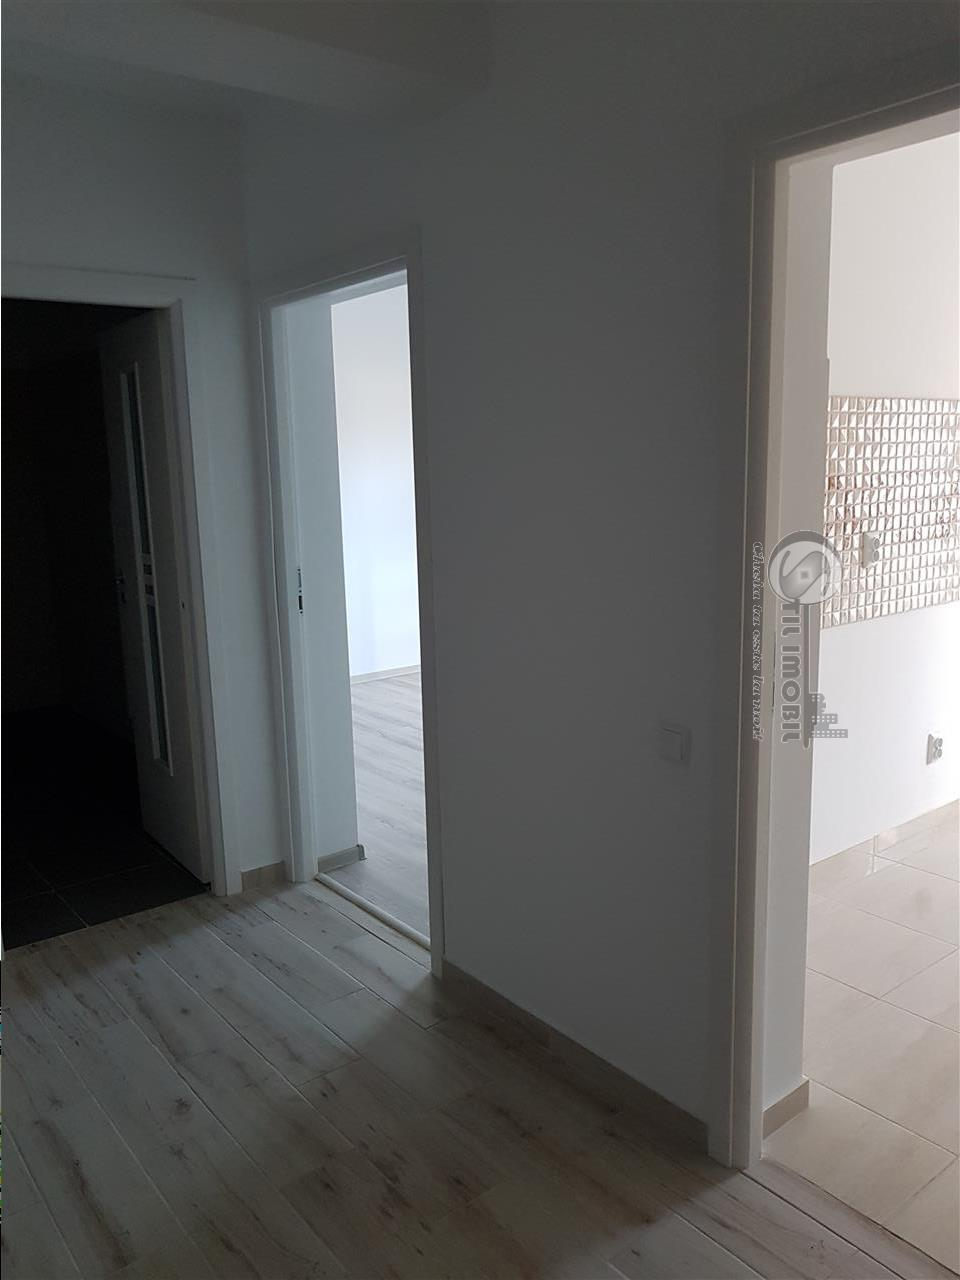 Apartament o camera 42mp - Popas Pacurari - Valea Lupului